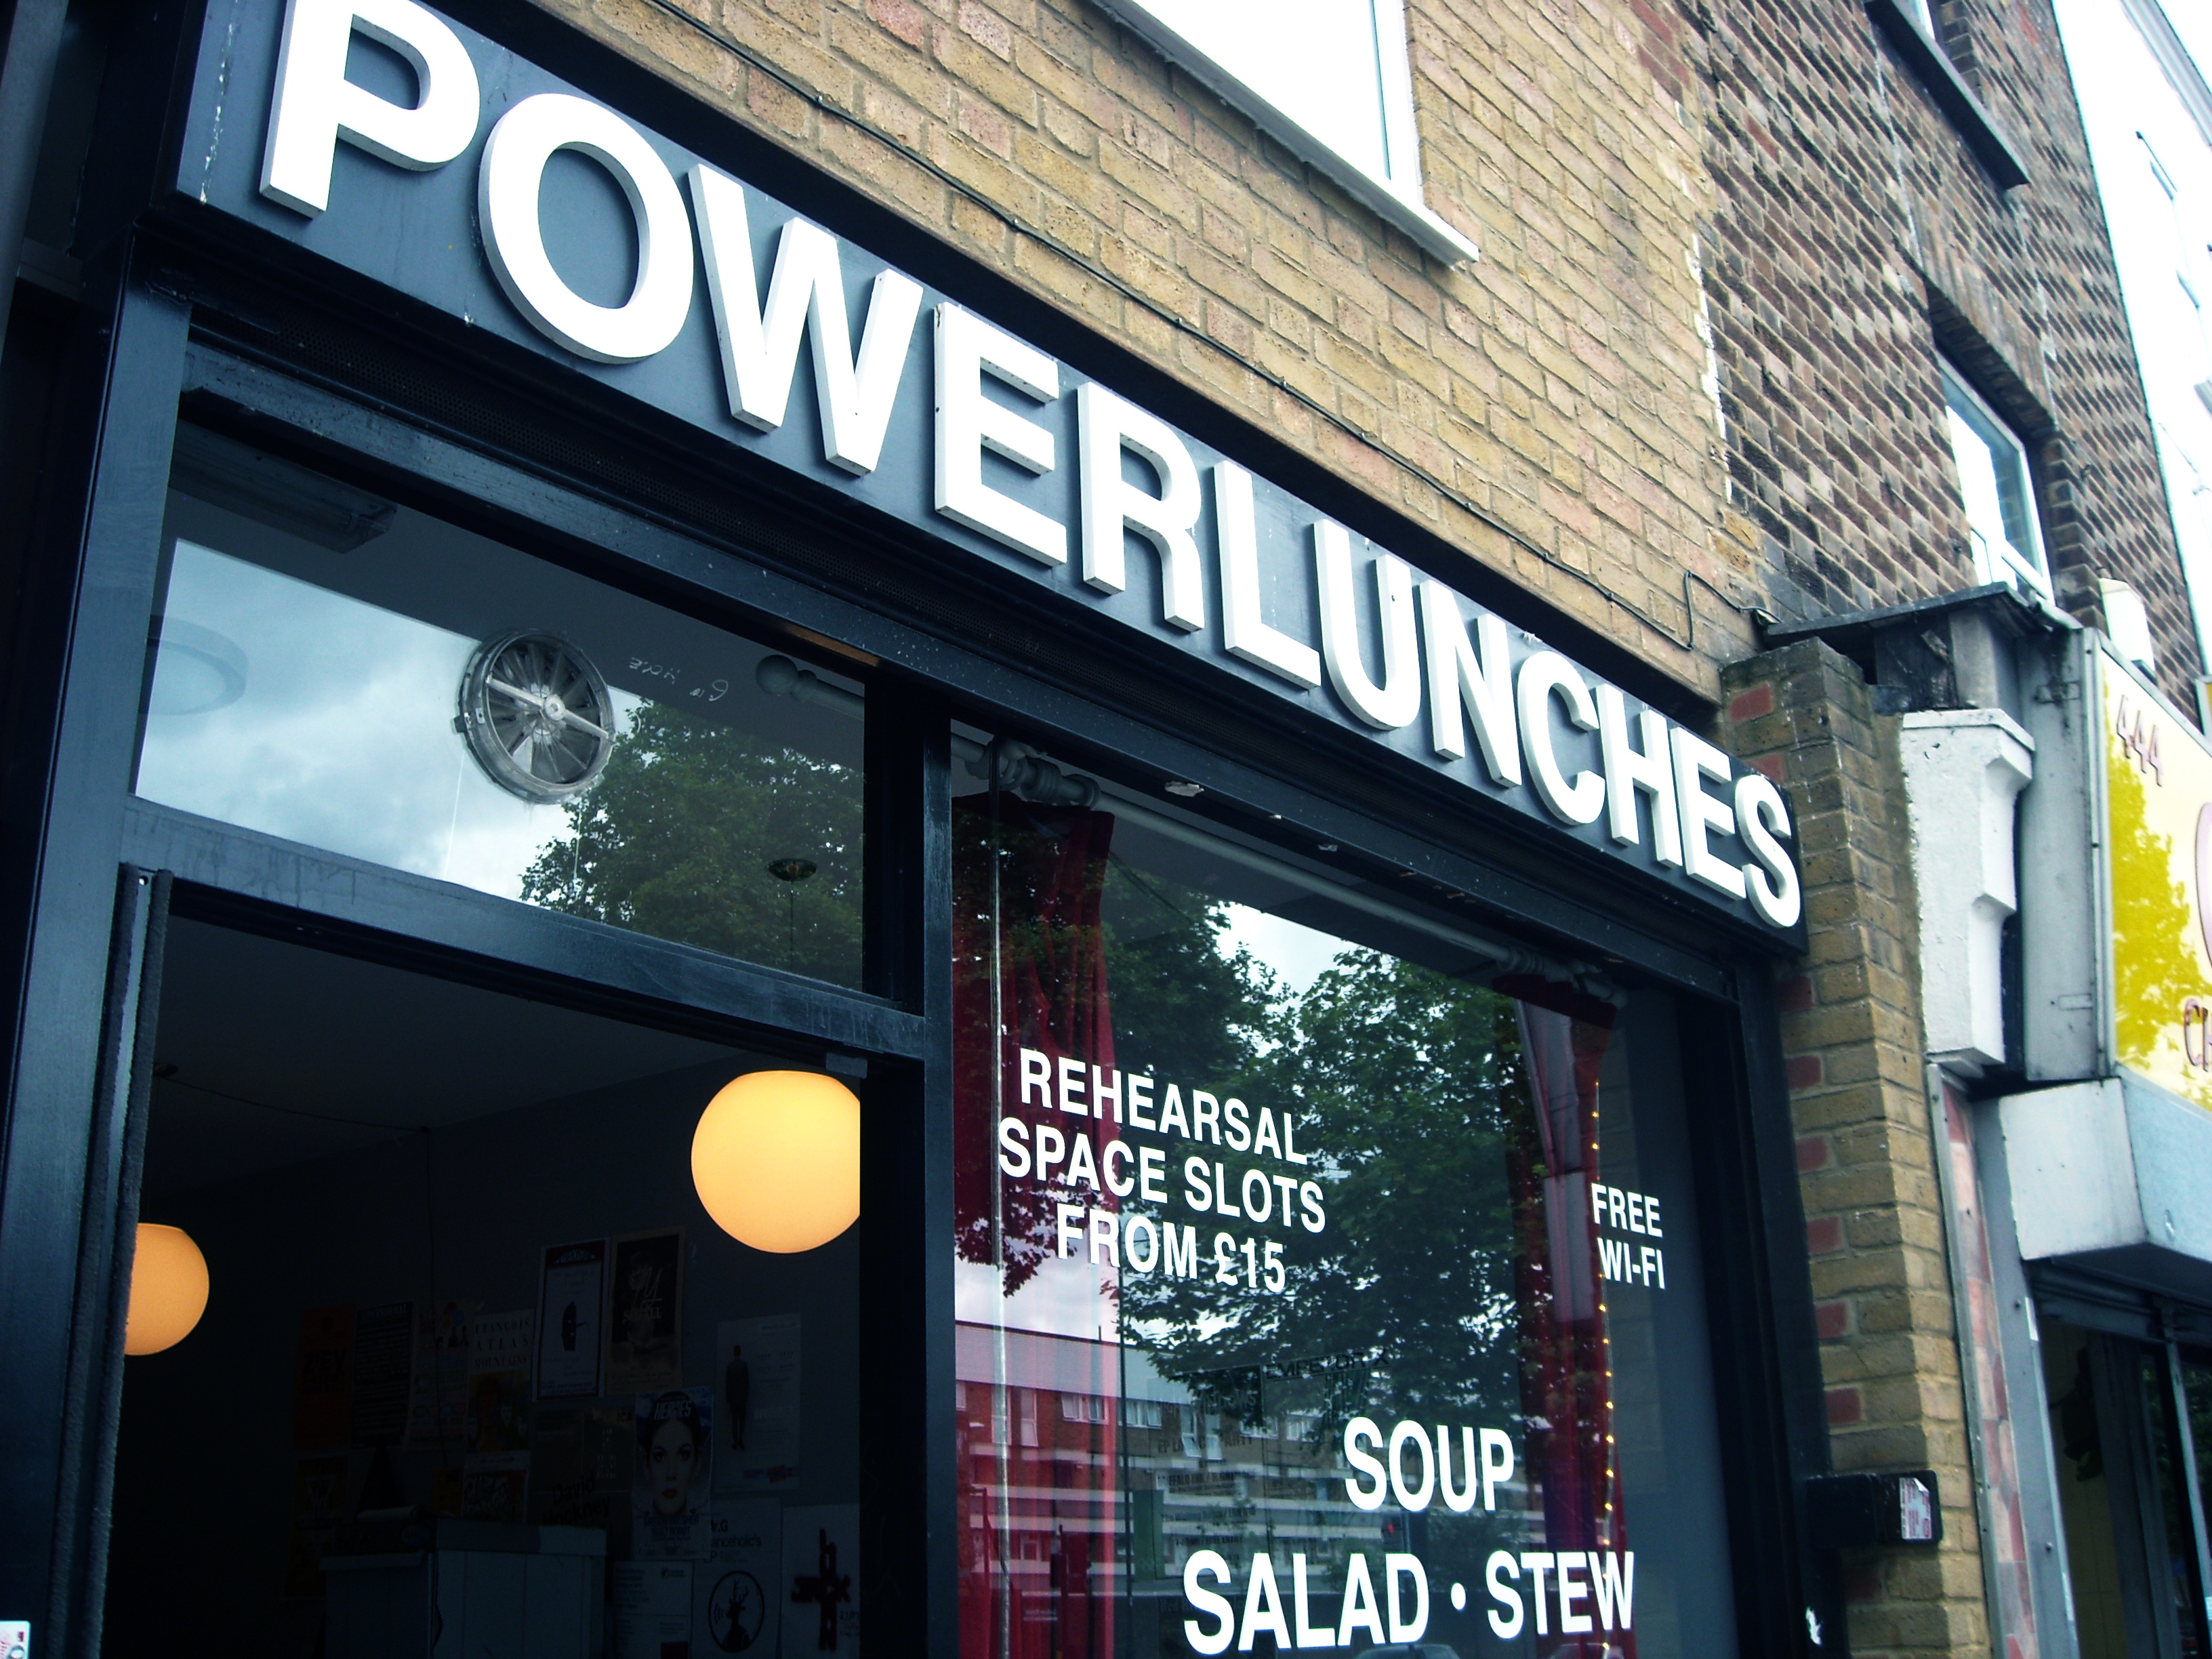 Power Lunches Arts Cafe